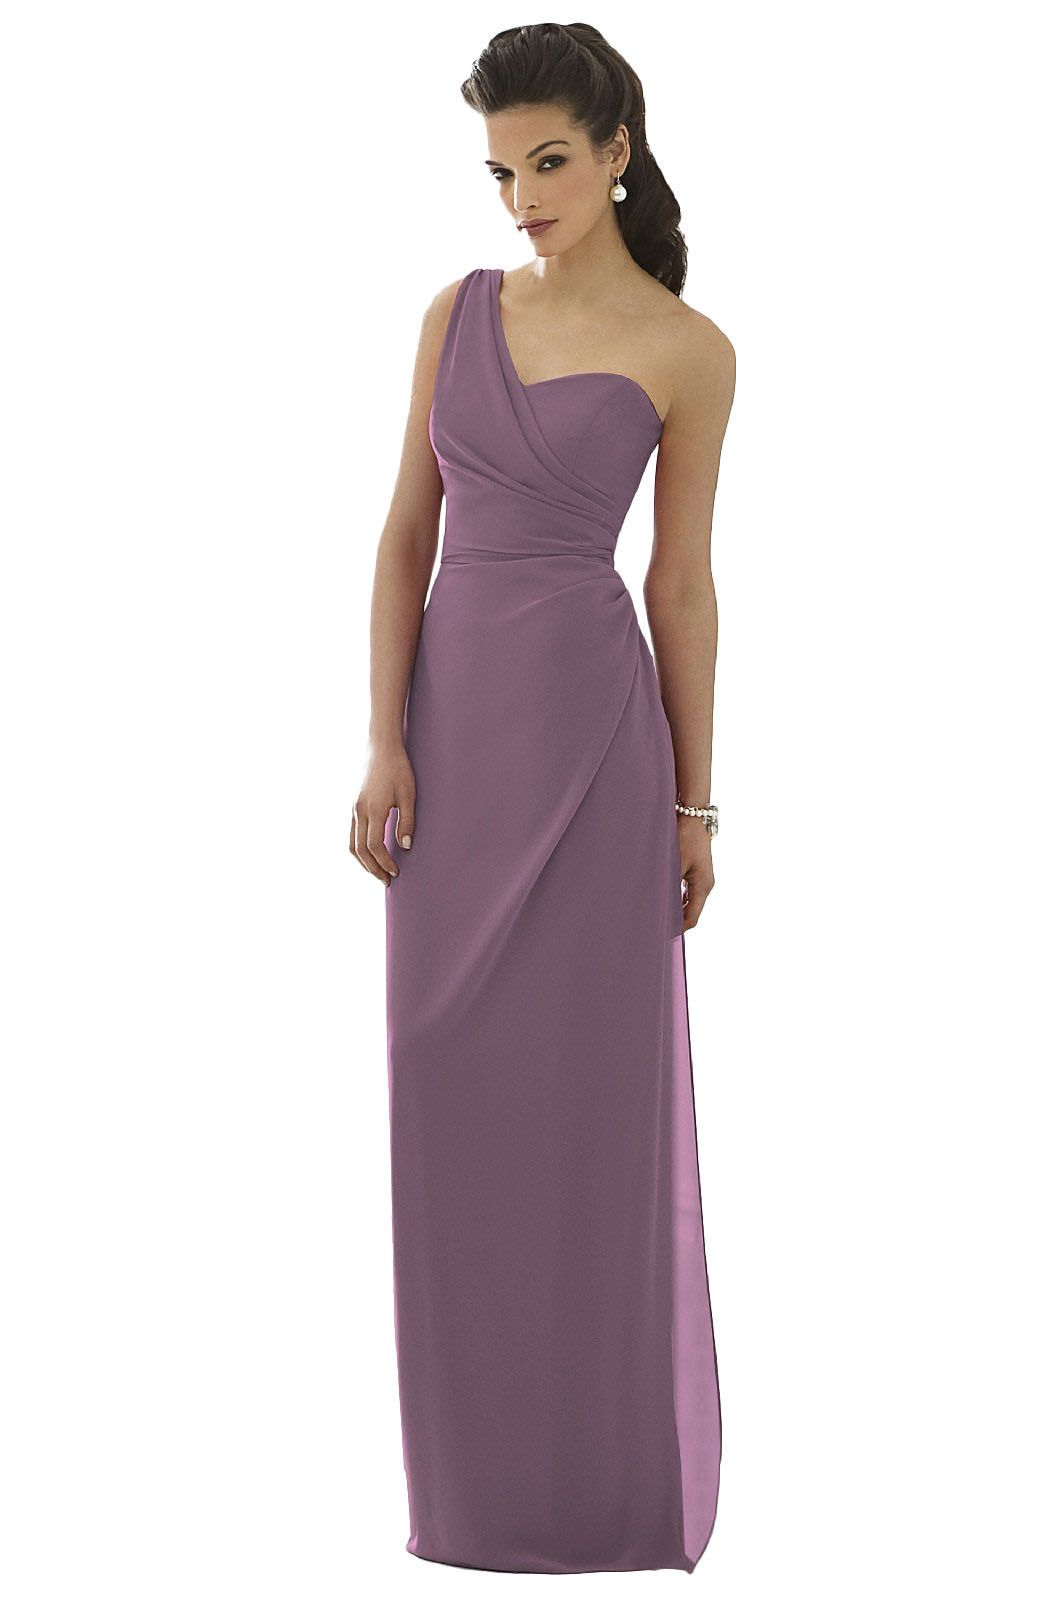 similar to levkoff dress, lots of mauve-ish colors to choose from ...